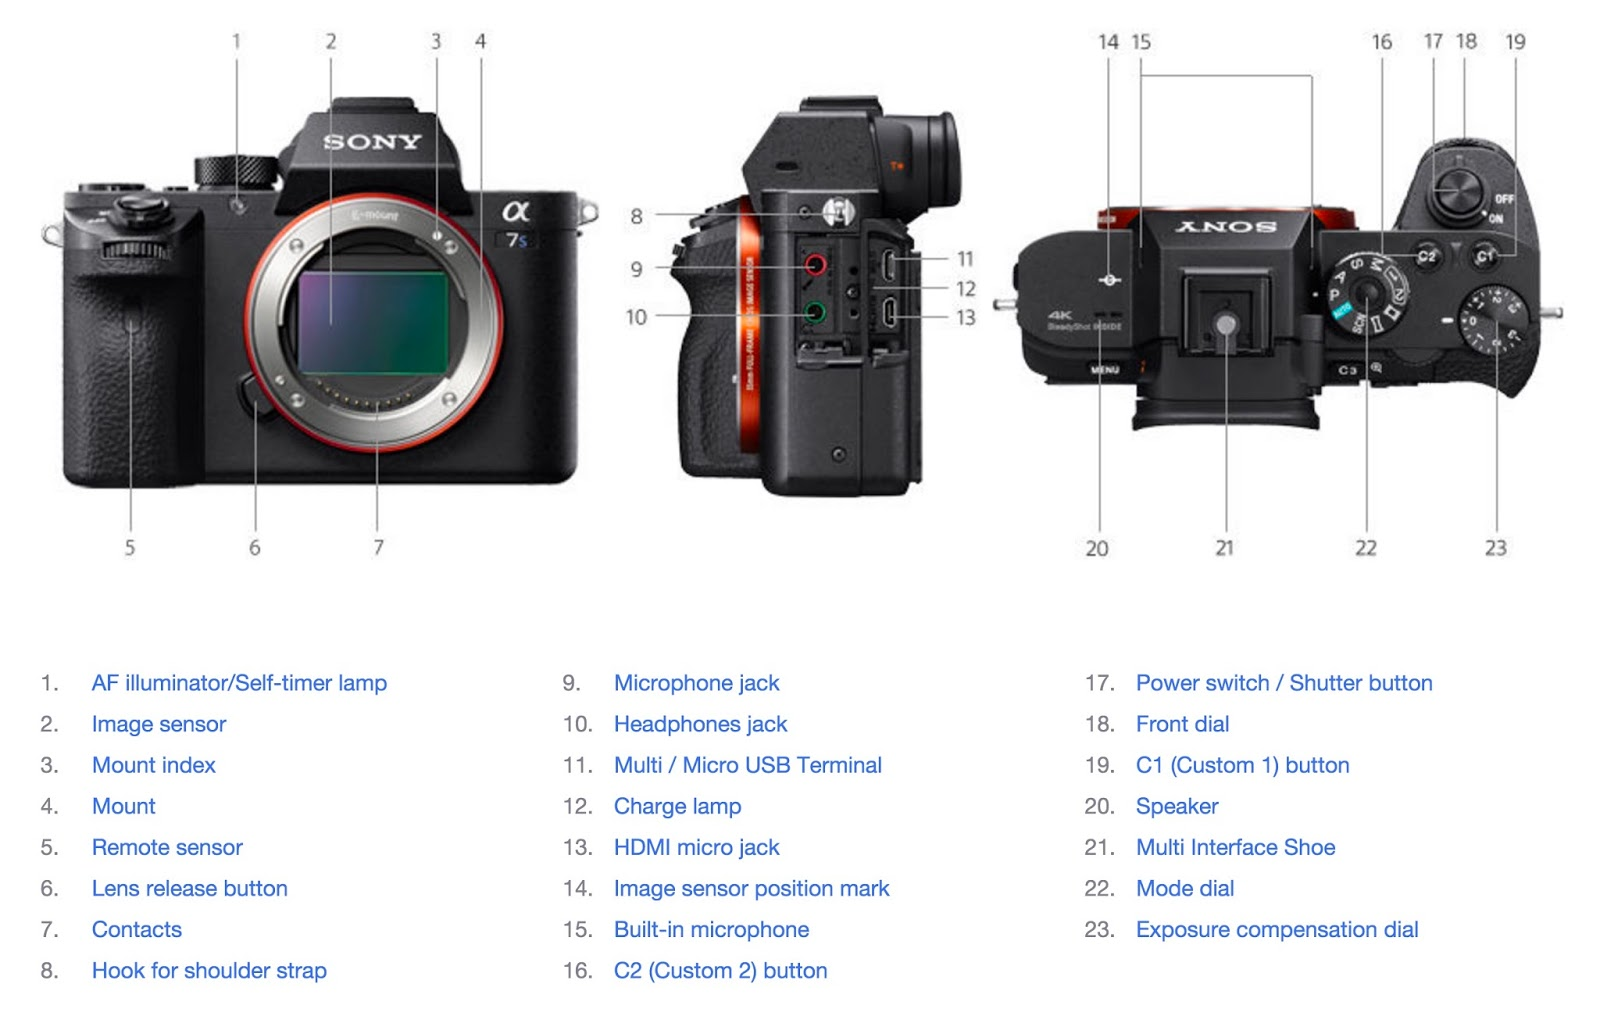 Adventure Nomad: The Newbie's Guide to Setting Up The Sony